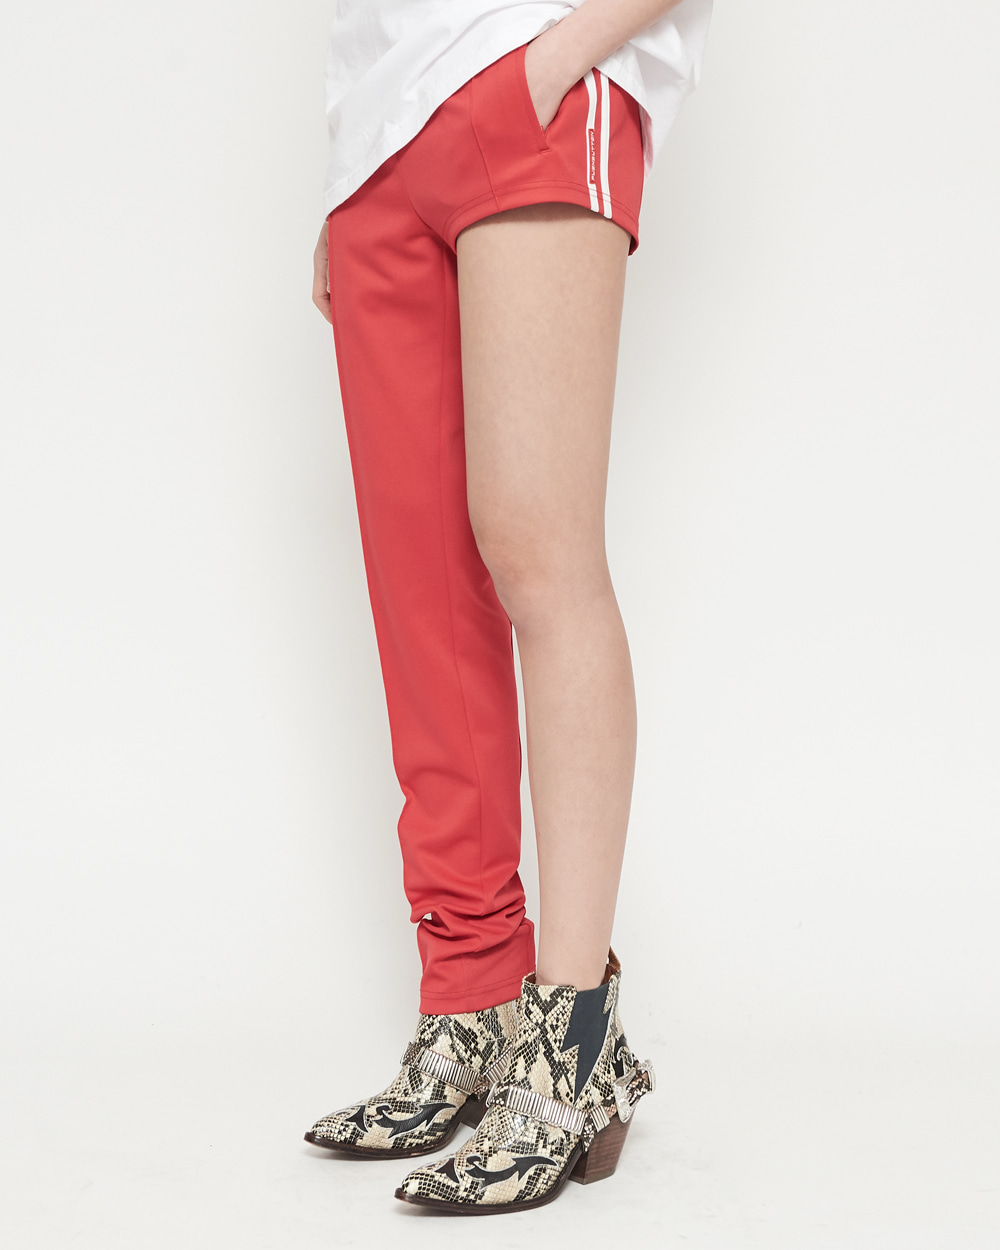 ONE-LEG JOGGING PANTS